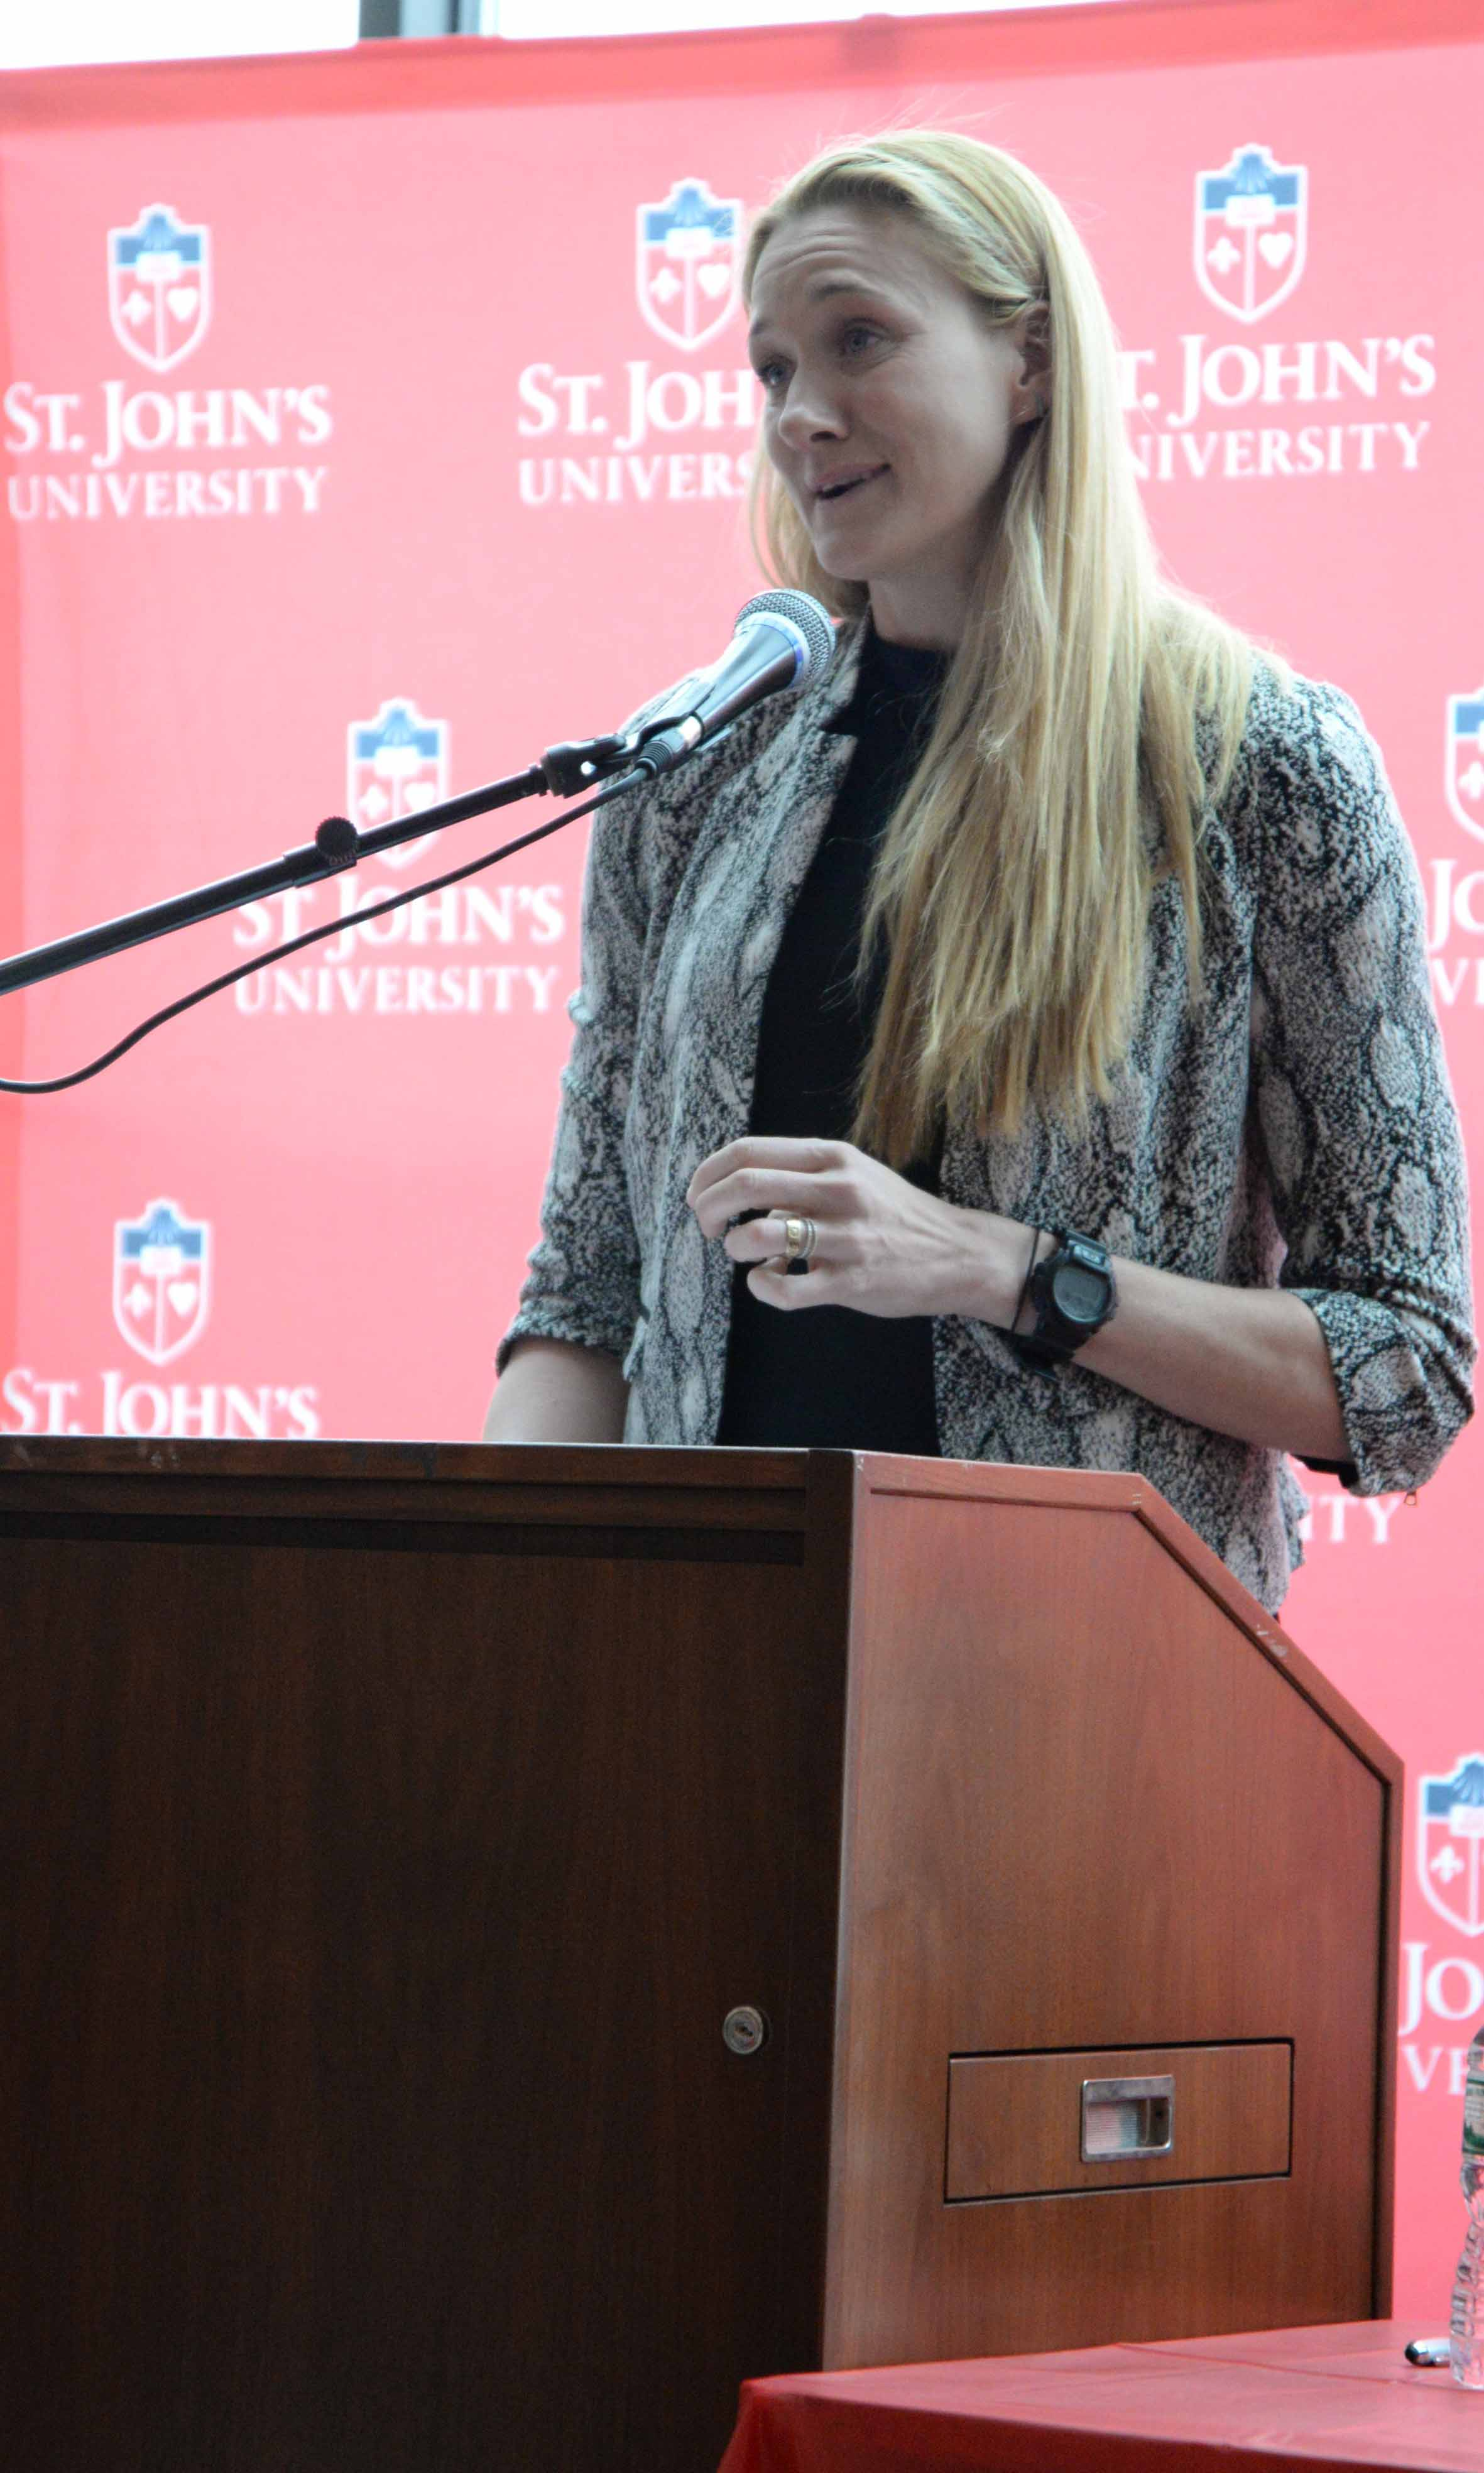 Three-time Olympic gold medalist Kerri Walsh Jennings stops by for Women in Sports Day on Feb. 8.